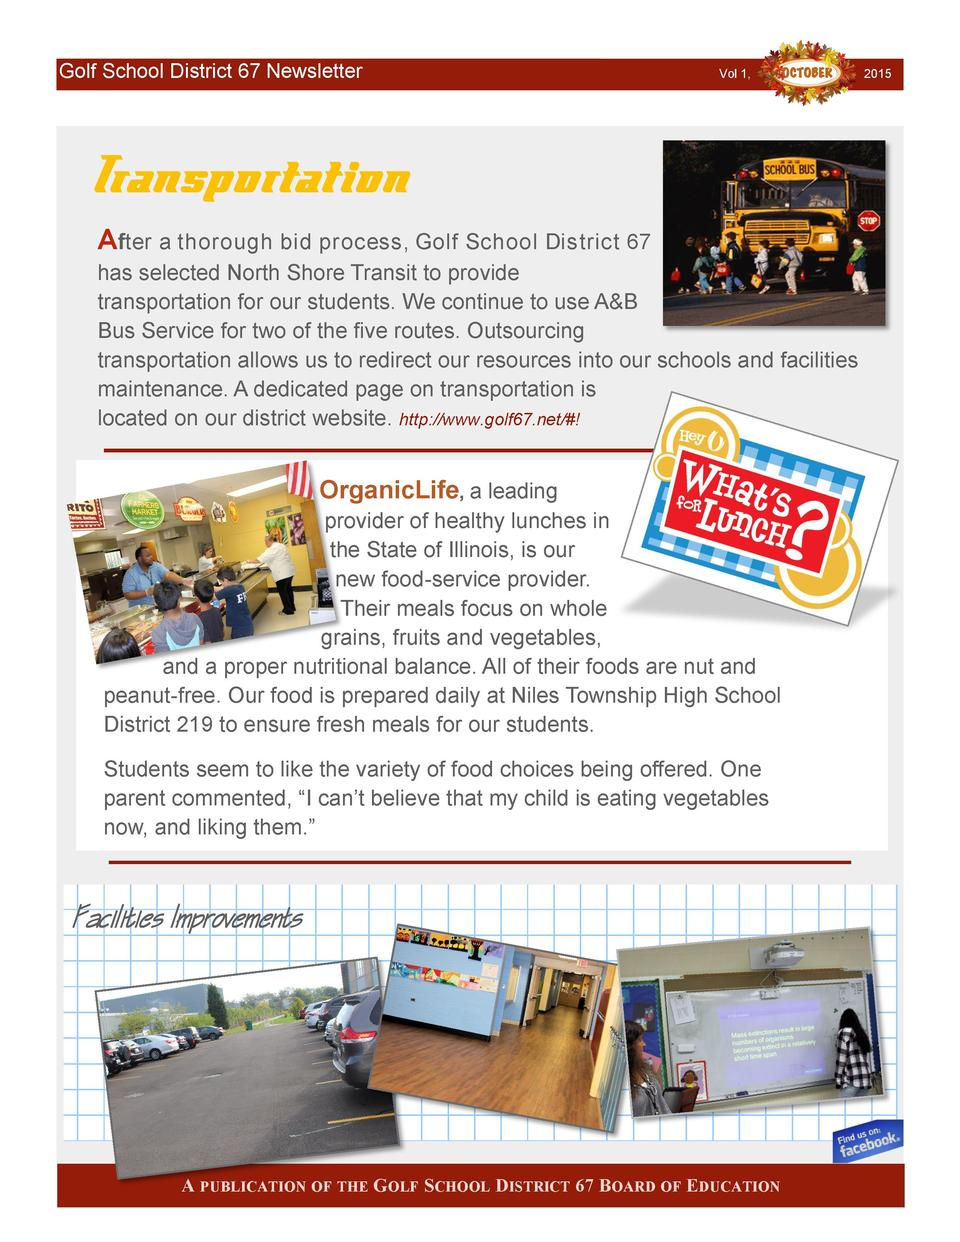 Golf School District 67 Newsletter  Vol 1,  Transportation After a thorough bid process, Golf School District 67 has selec...